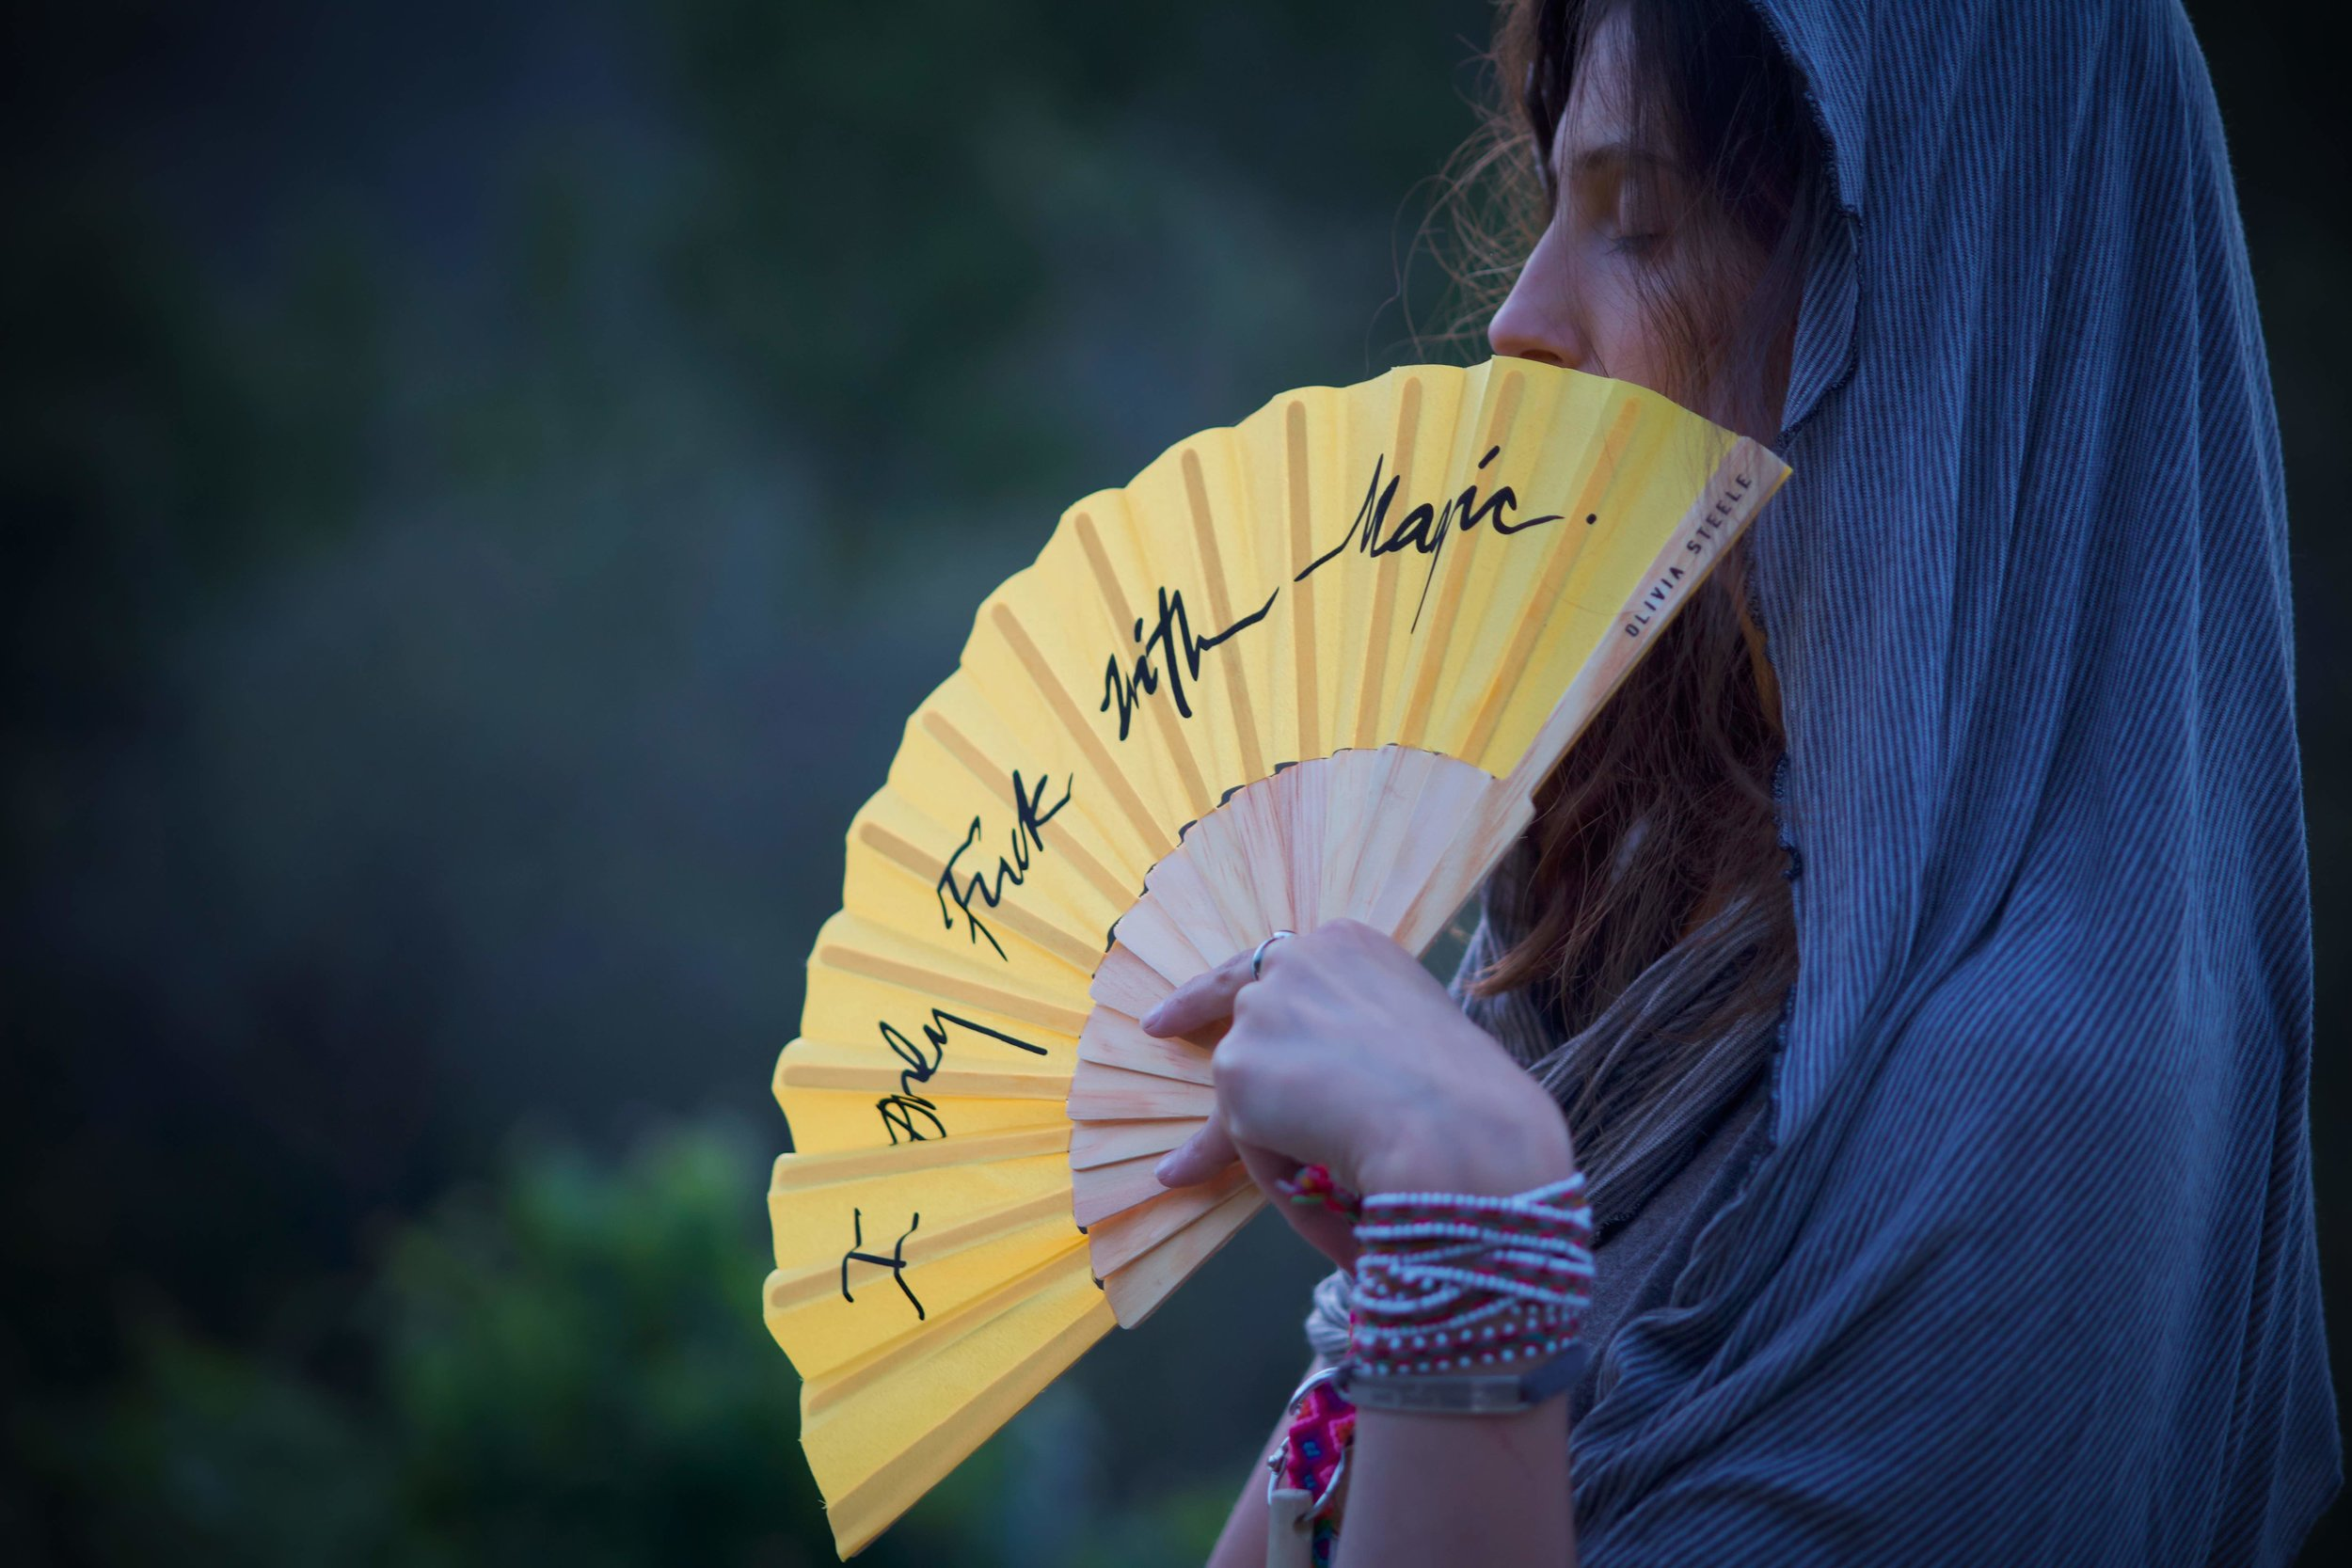 Fan Set_I Only Fuck With Magic_Yellow_High Res_@ELYAOU_BIALOBOS_3.jpeg